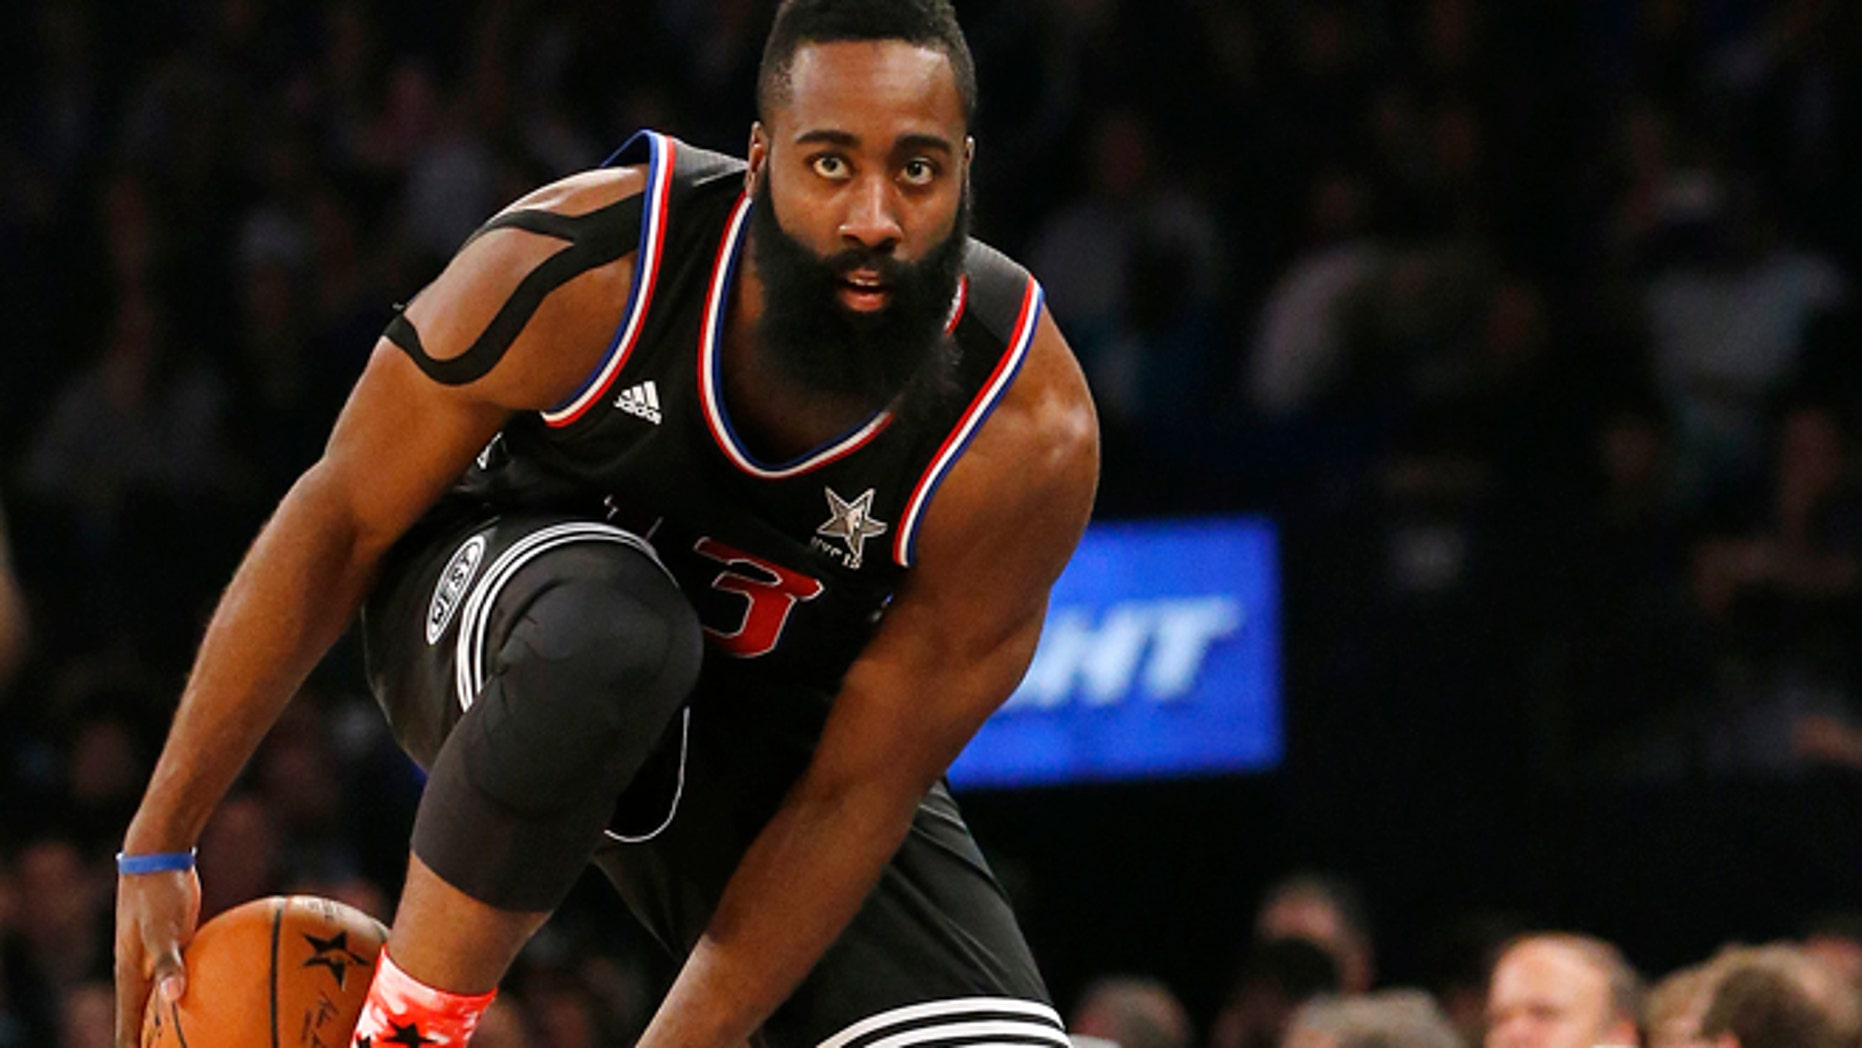 Feb. 15, 2015: West Teams James Harden, of the Houston Rockets, tries to keep the ball inbounds during the second half of the NBA All-Star basketball game, in New York.